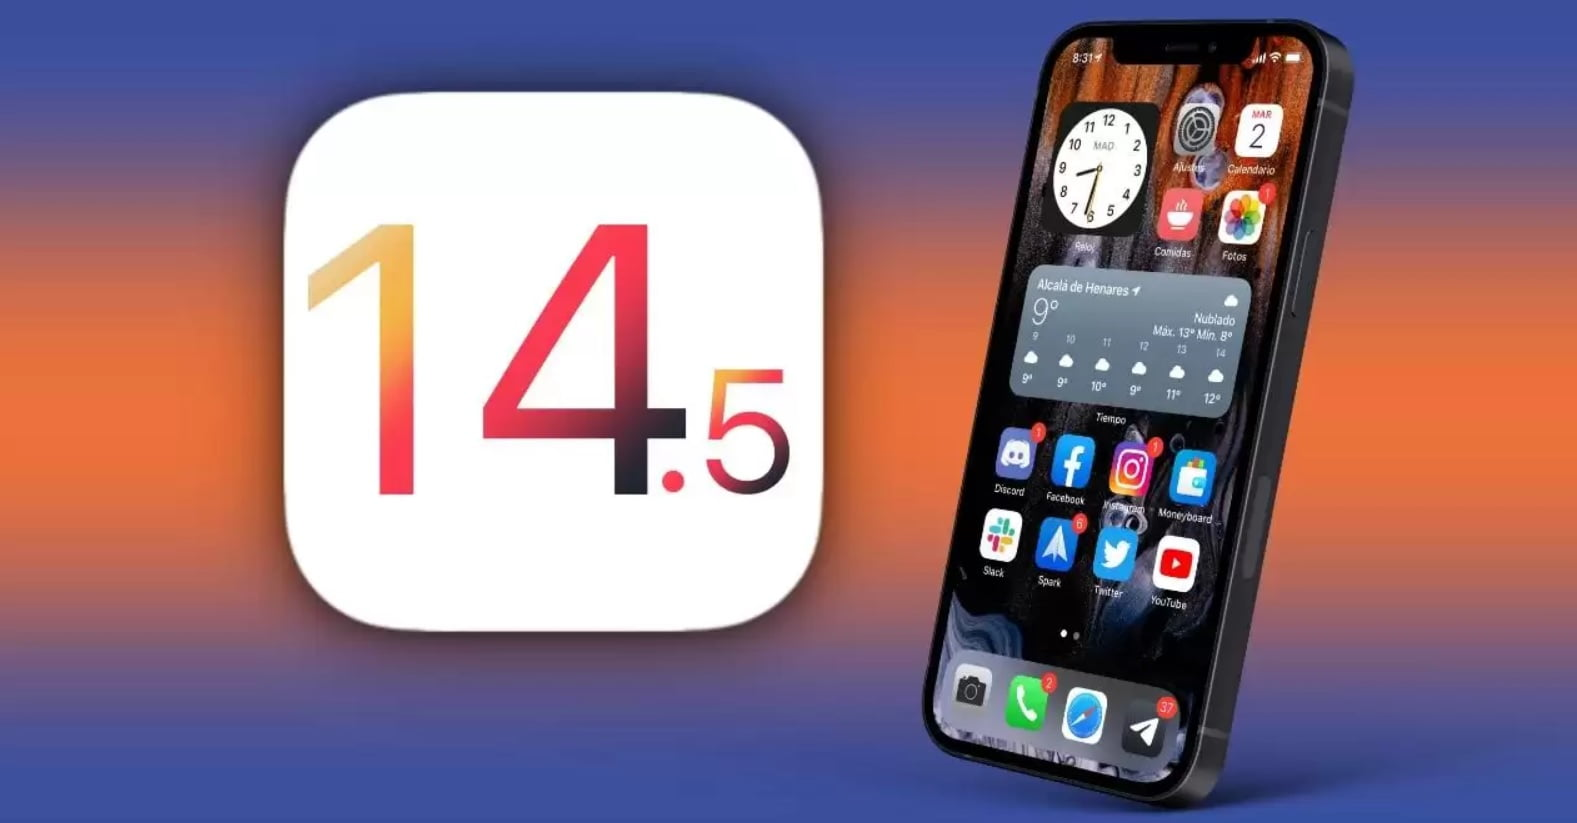 Apple to officially release iOS 14.5 next week